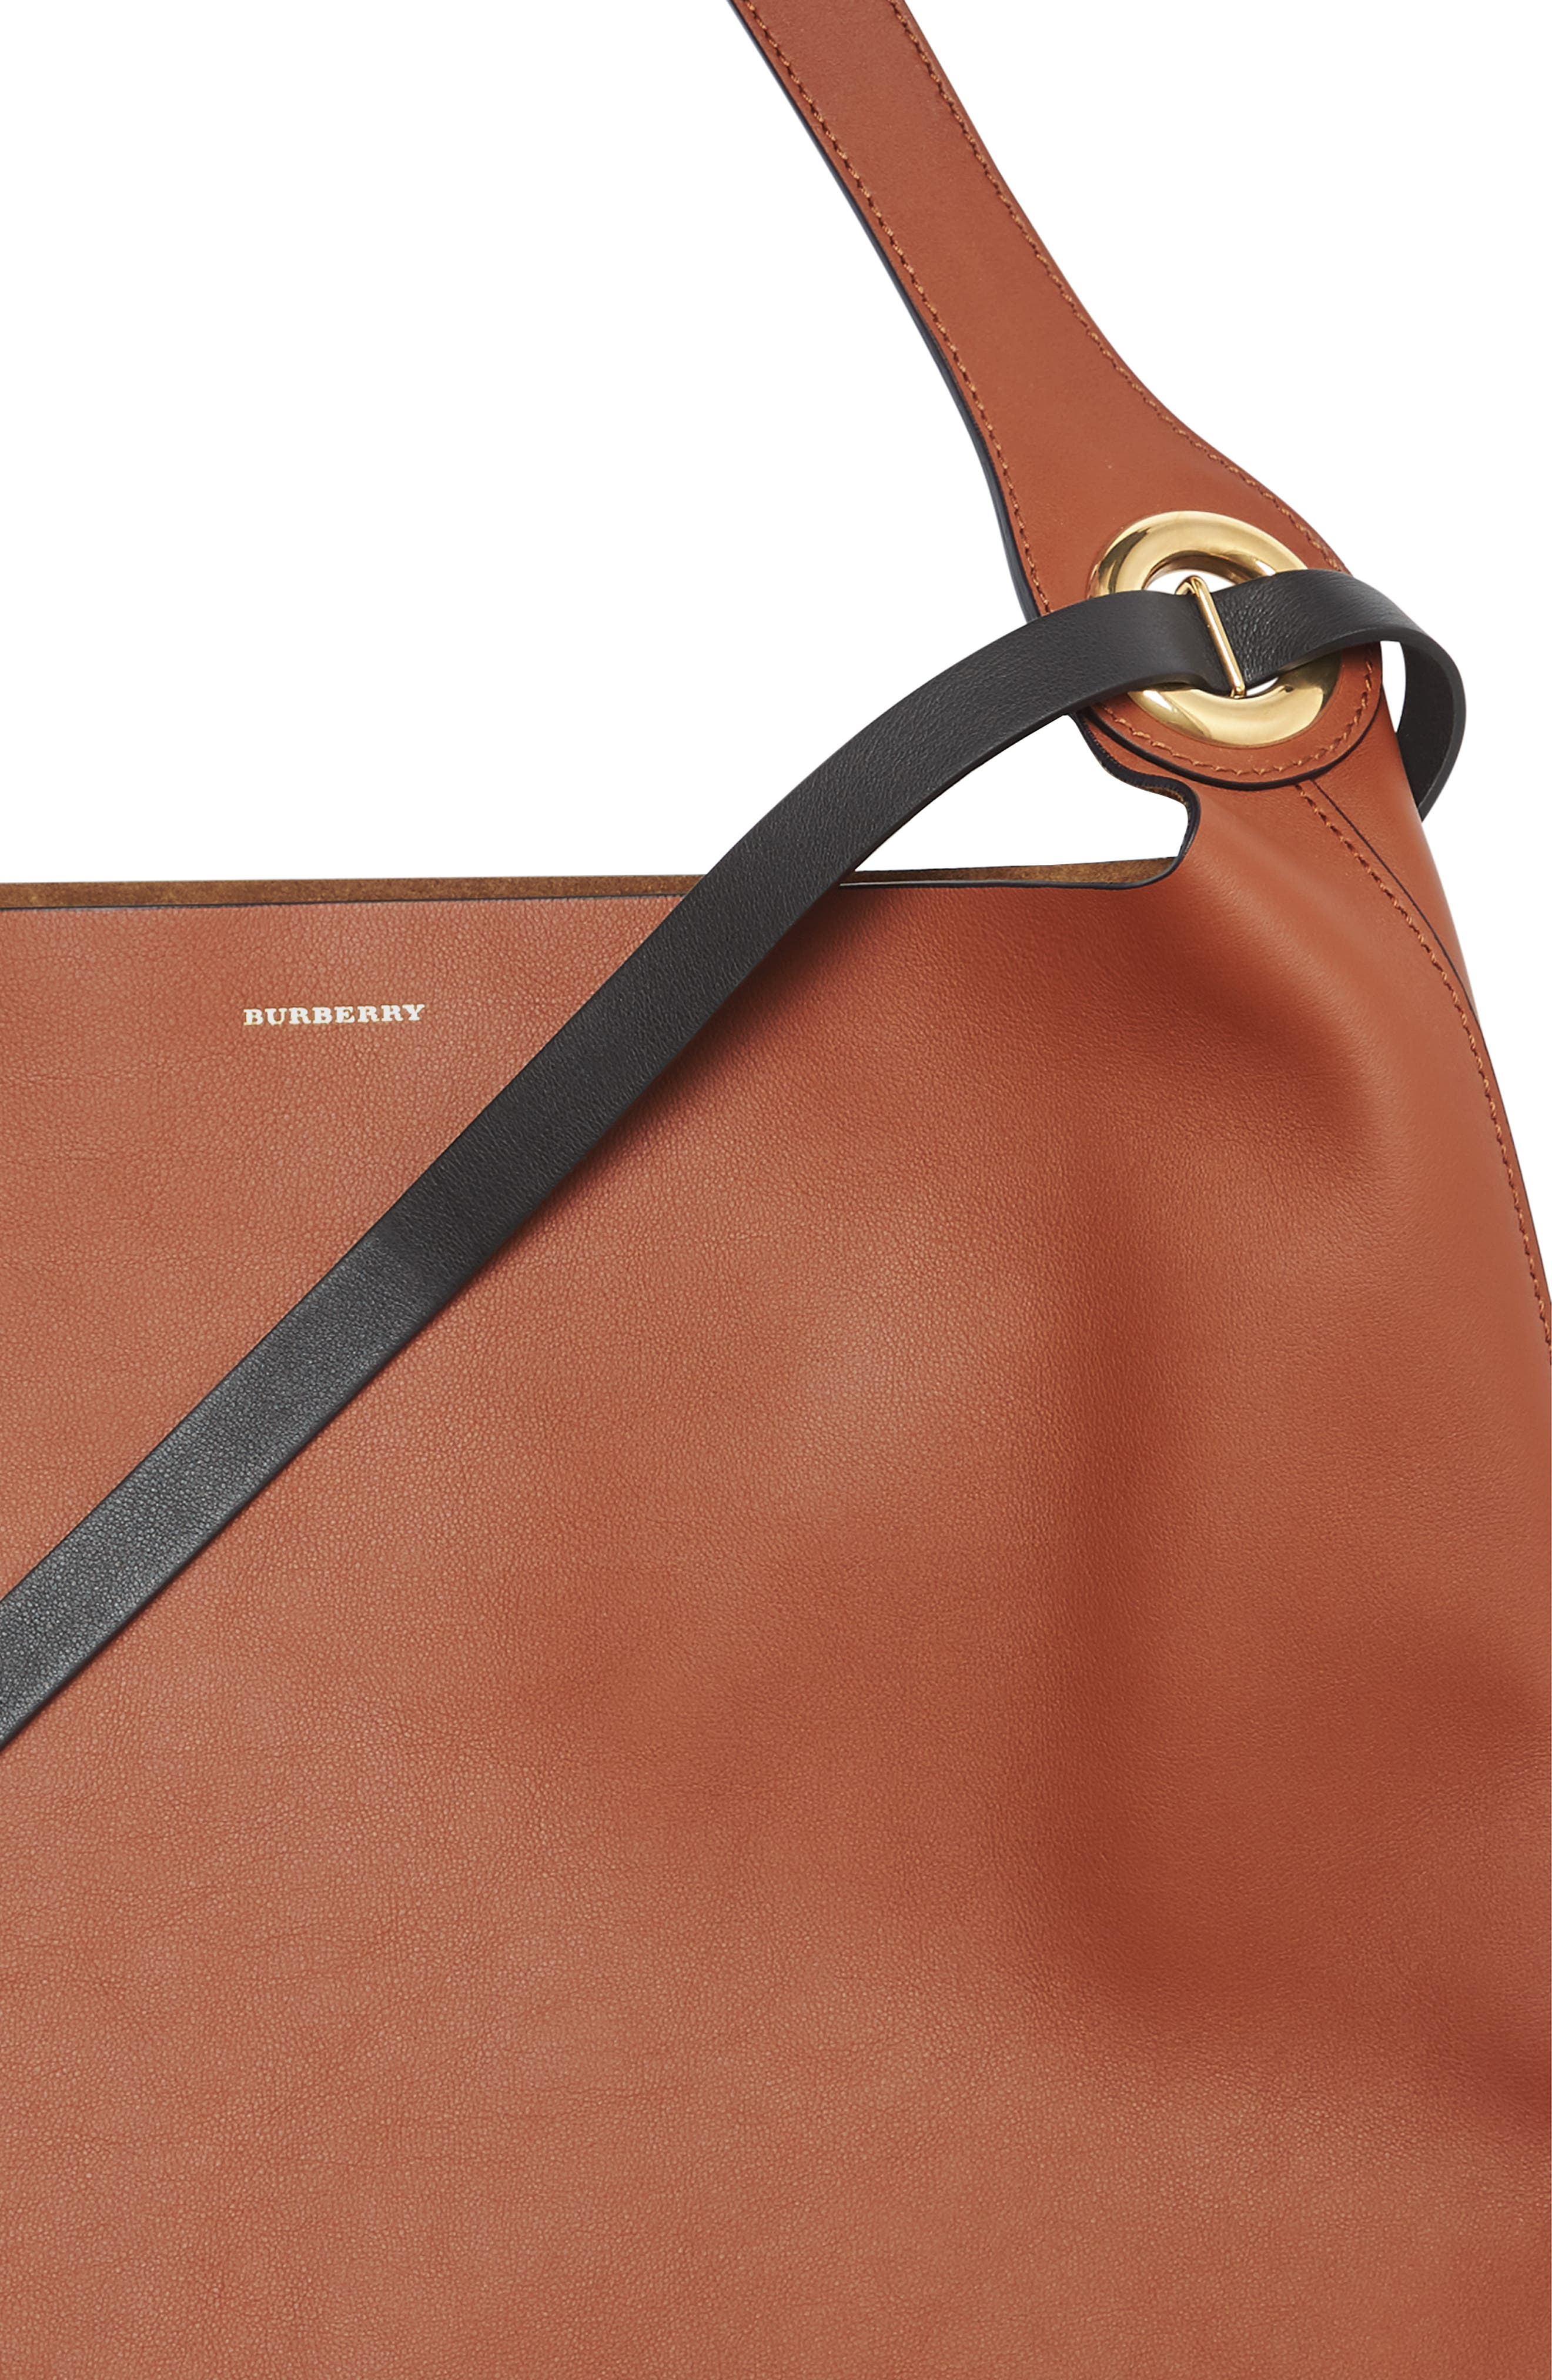 Grommet Medium Leather Hobo,                             Alternate thumbnail 4, color,                             216